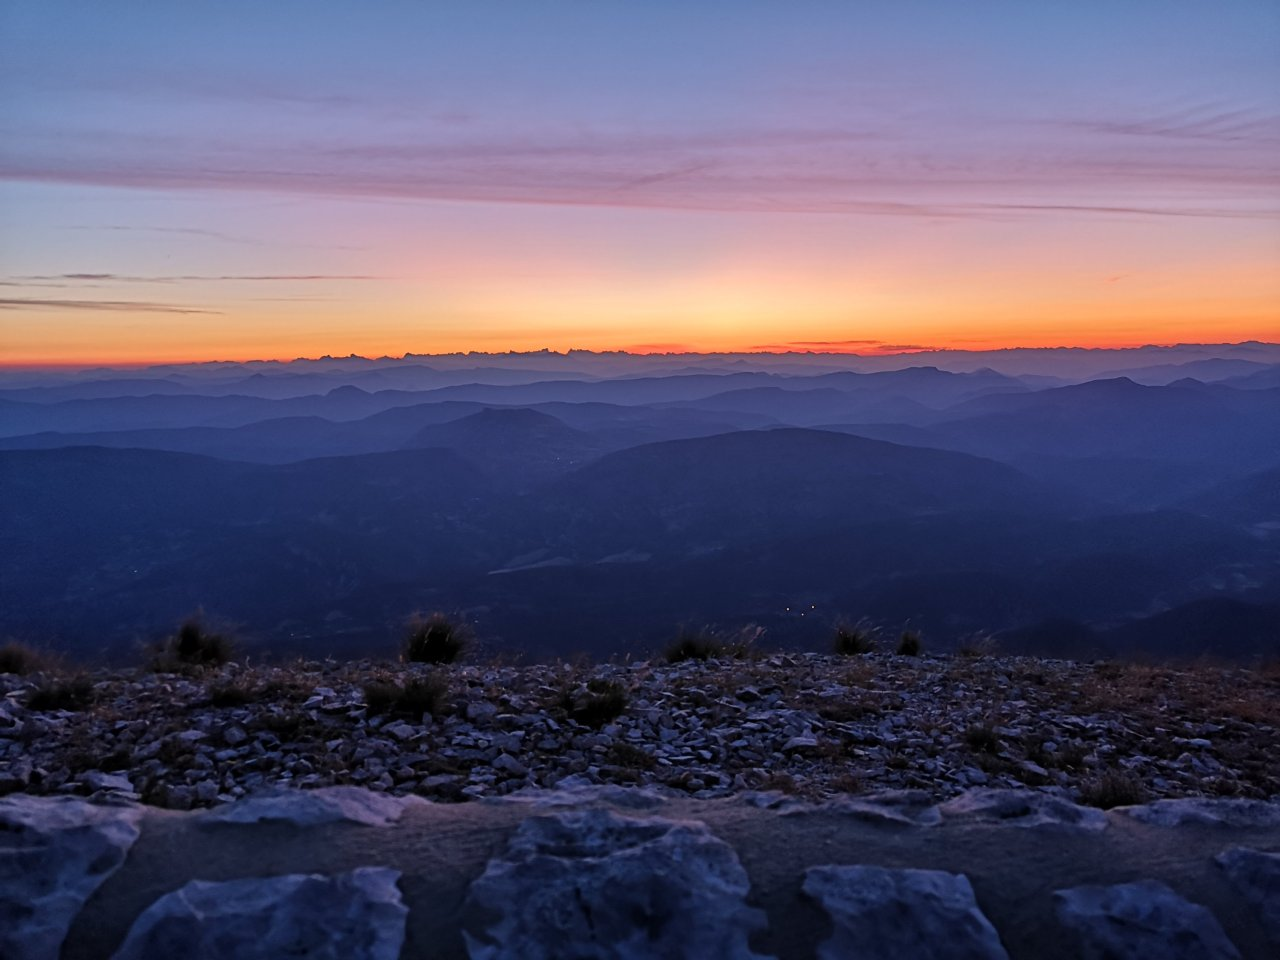 Chasing the dawn on Mont Ventoux